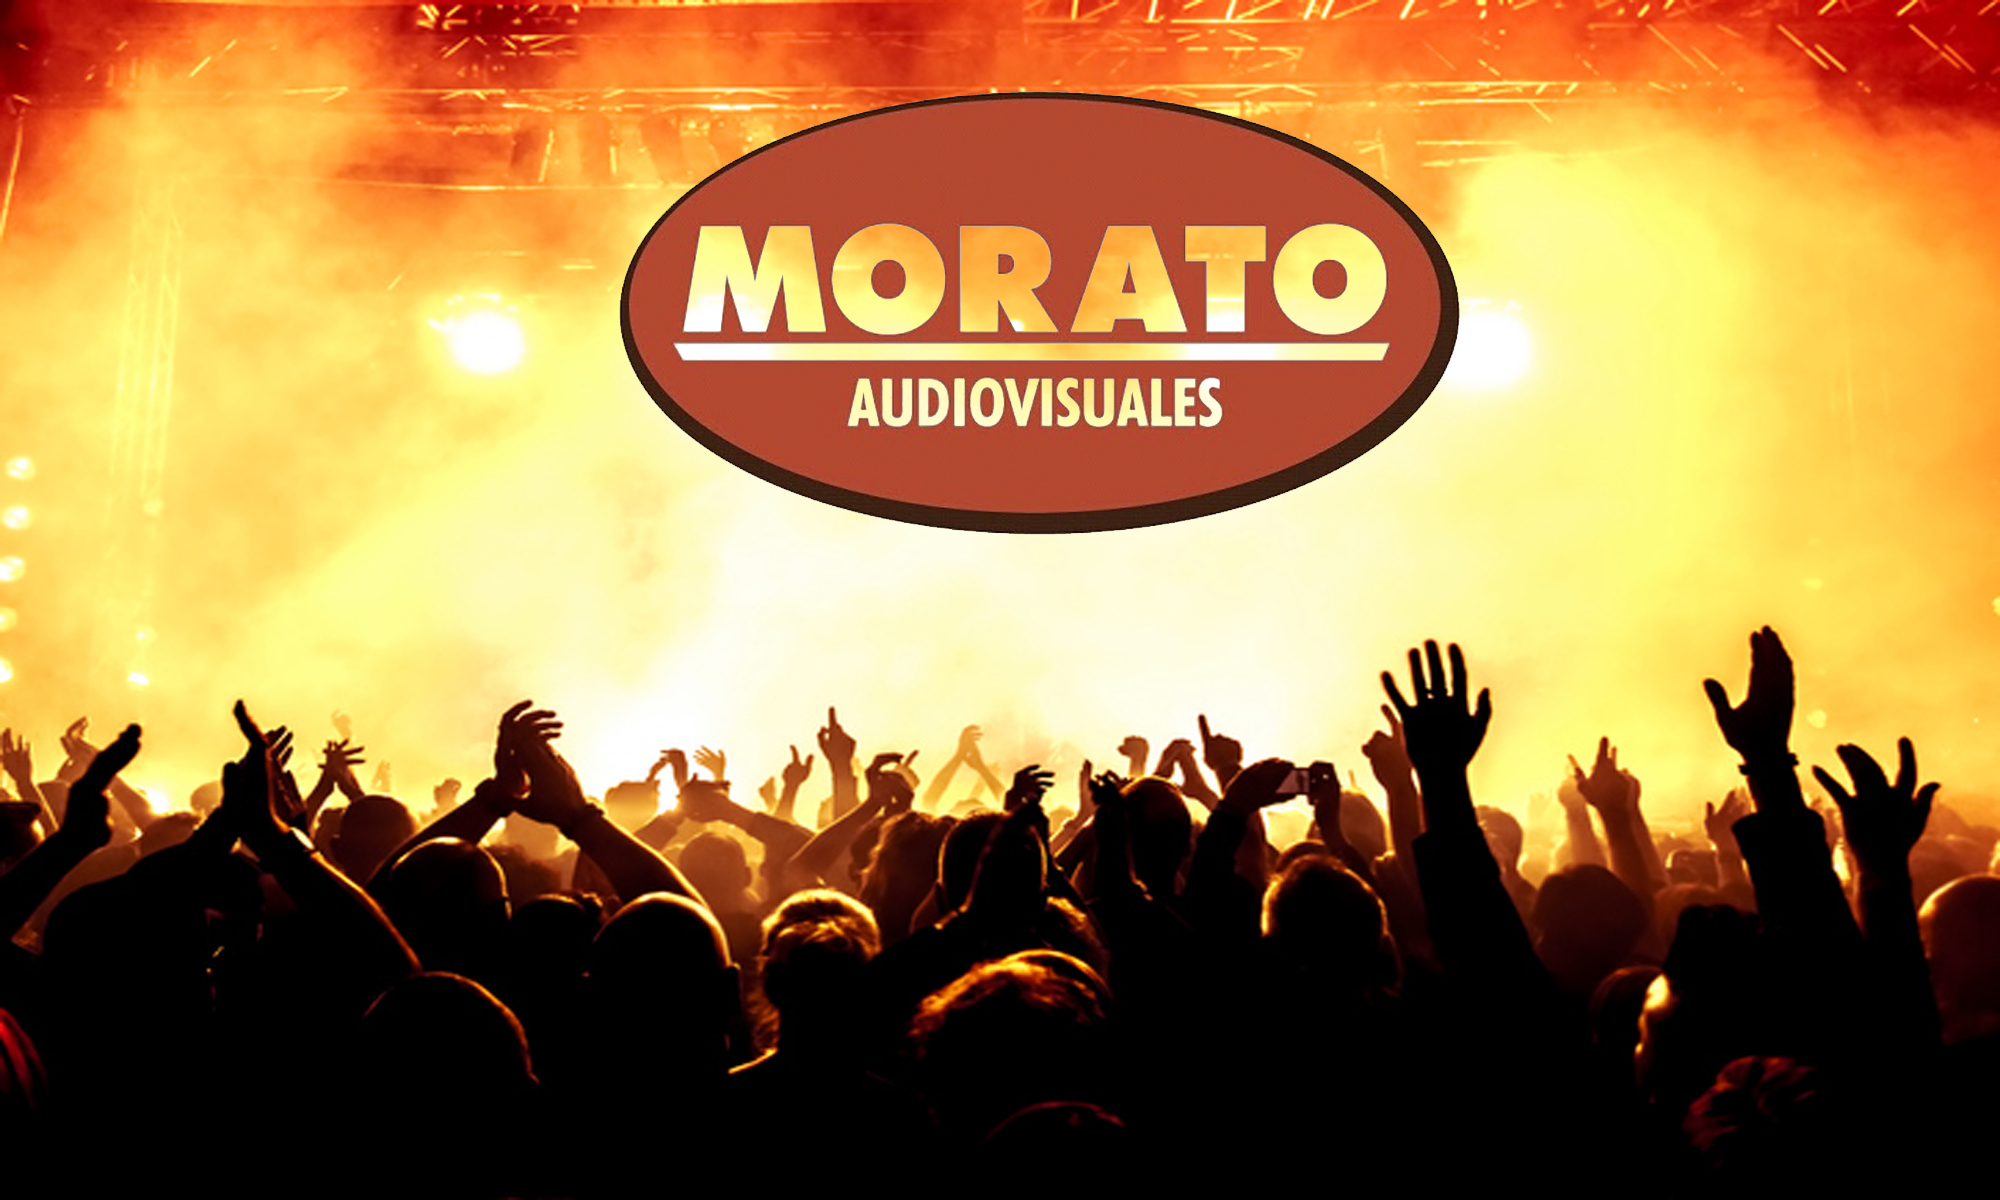 Audio Visuales Morato, S.L.